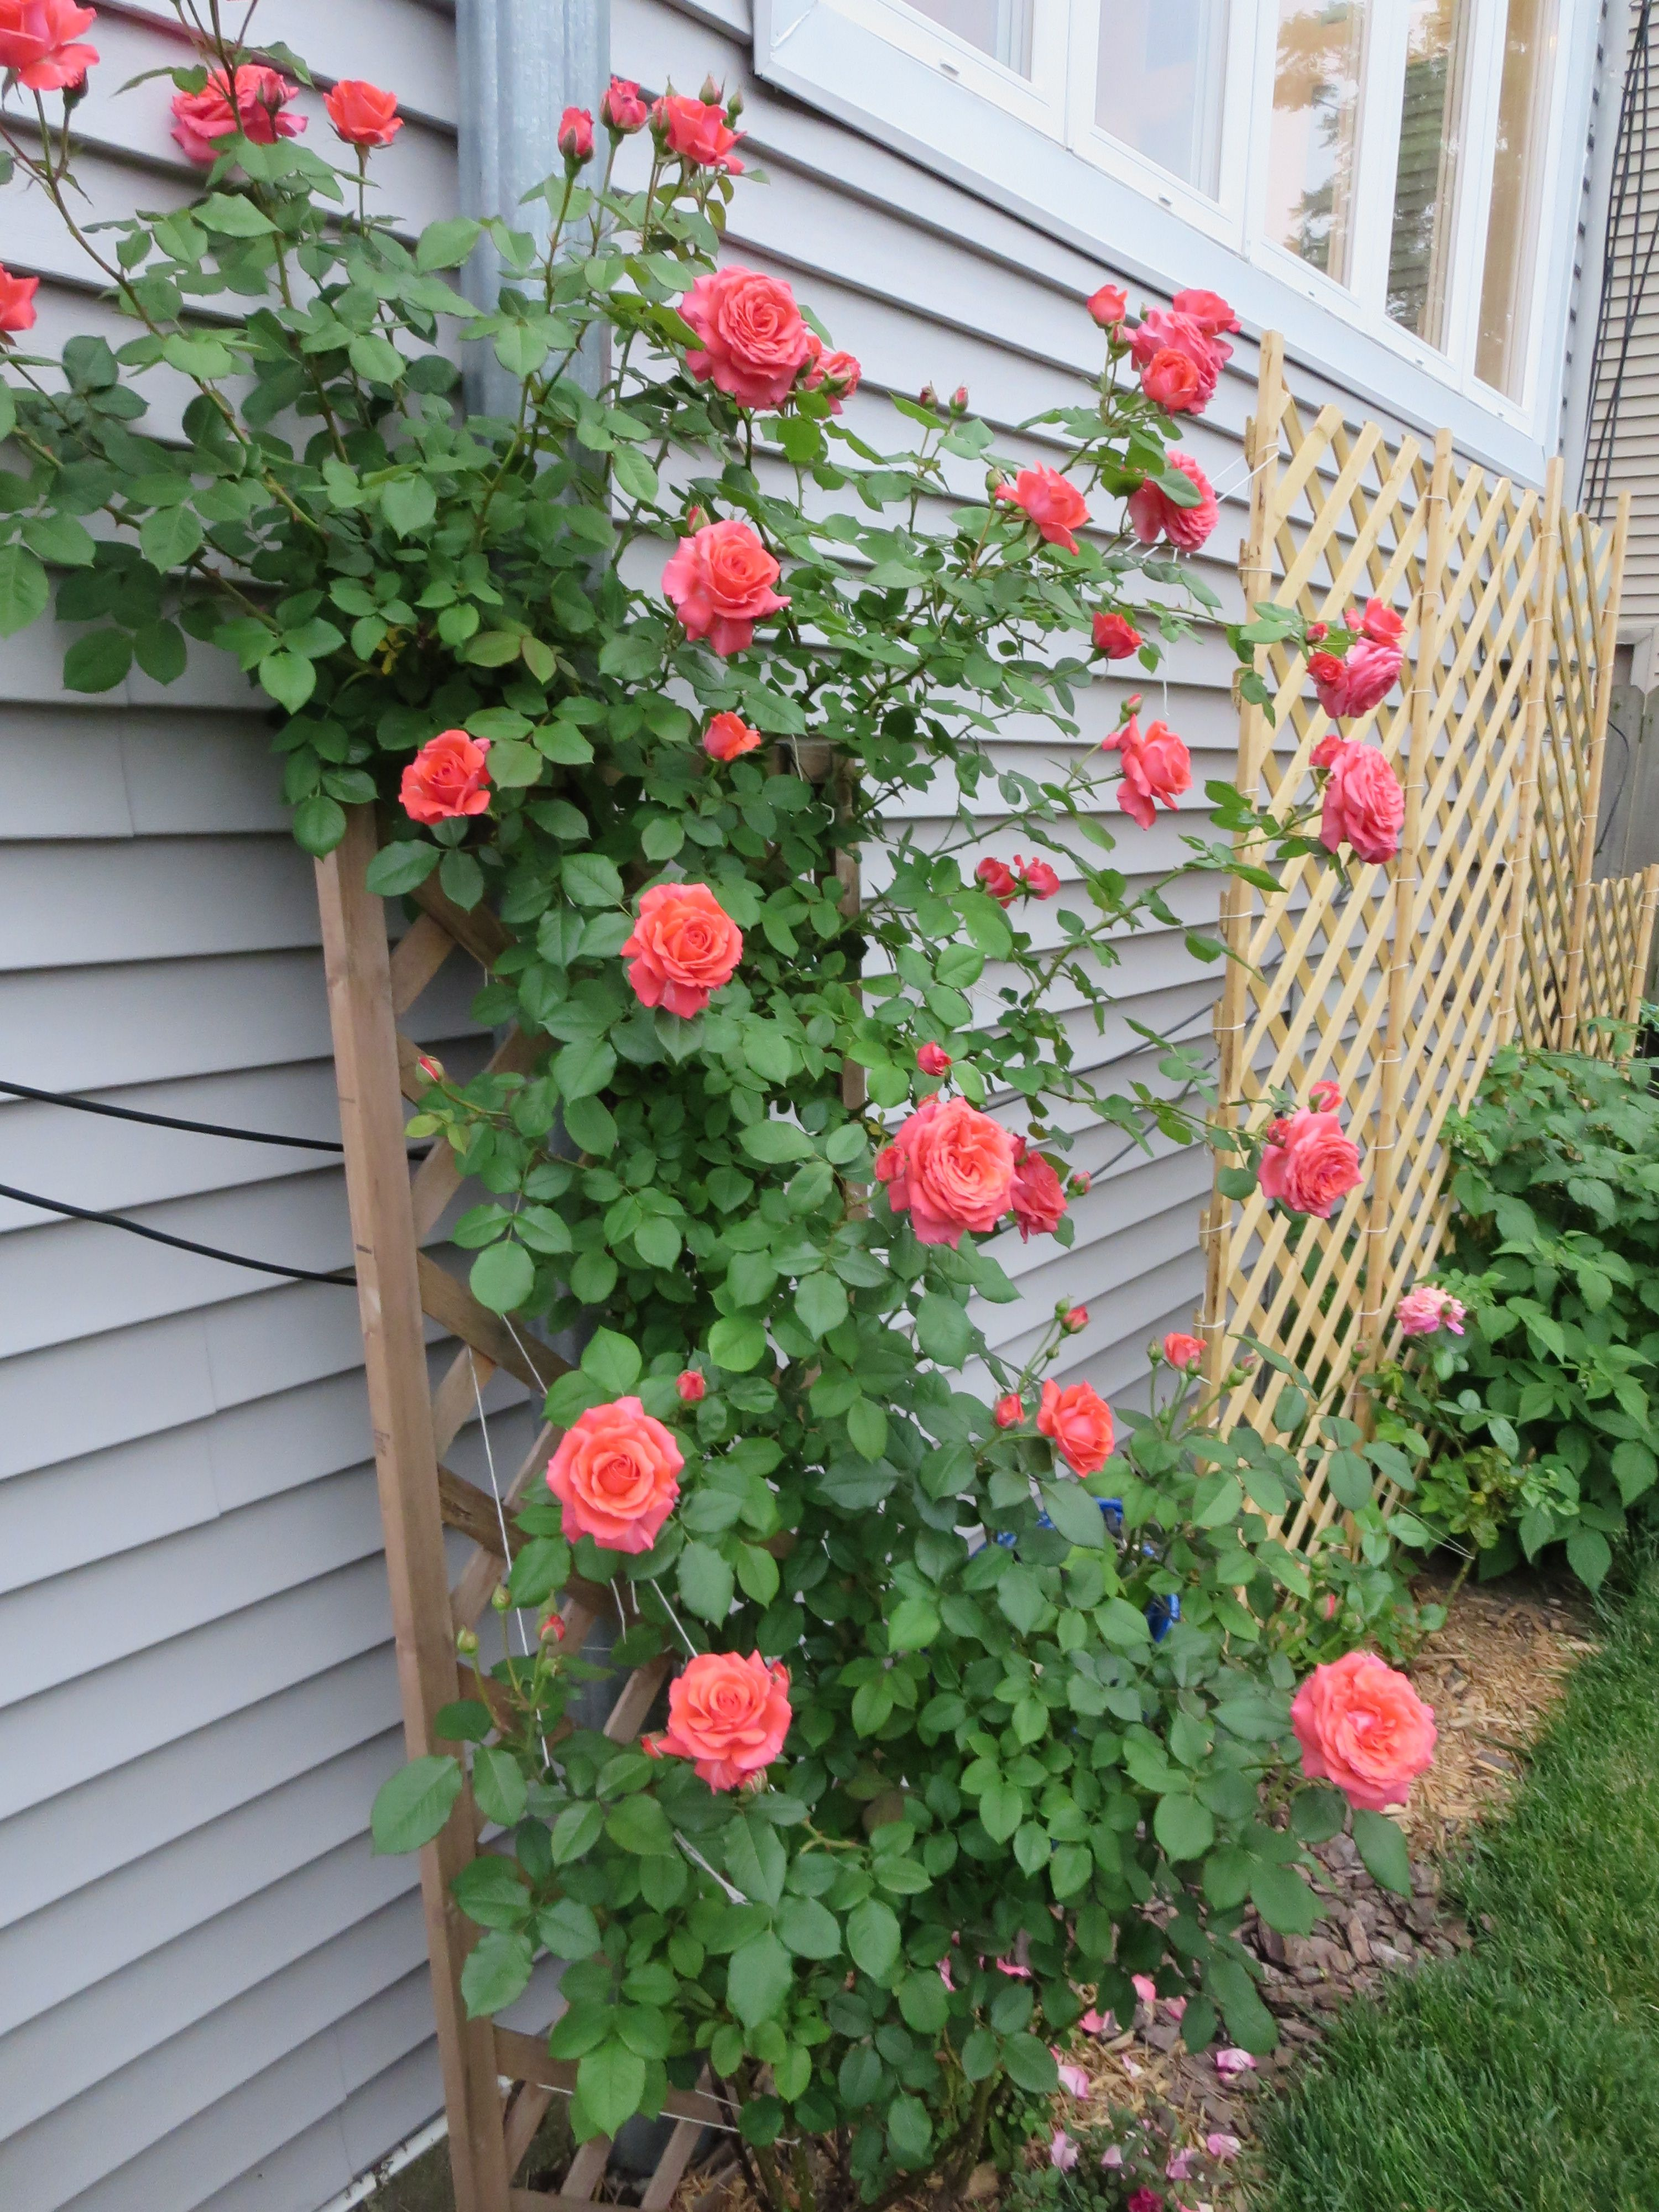 The C I America Climbing Rose Bush In Full Glory I Can See It From Right Under My Window Climbing Roses